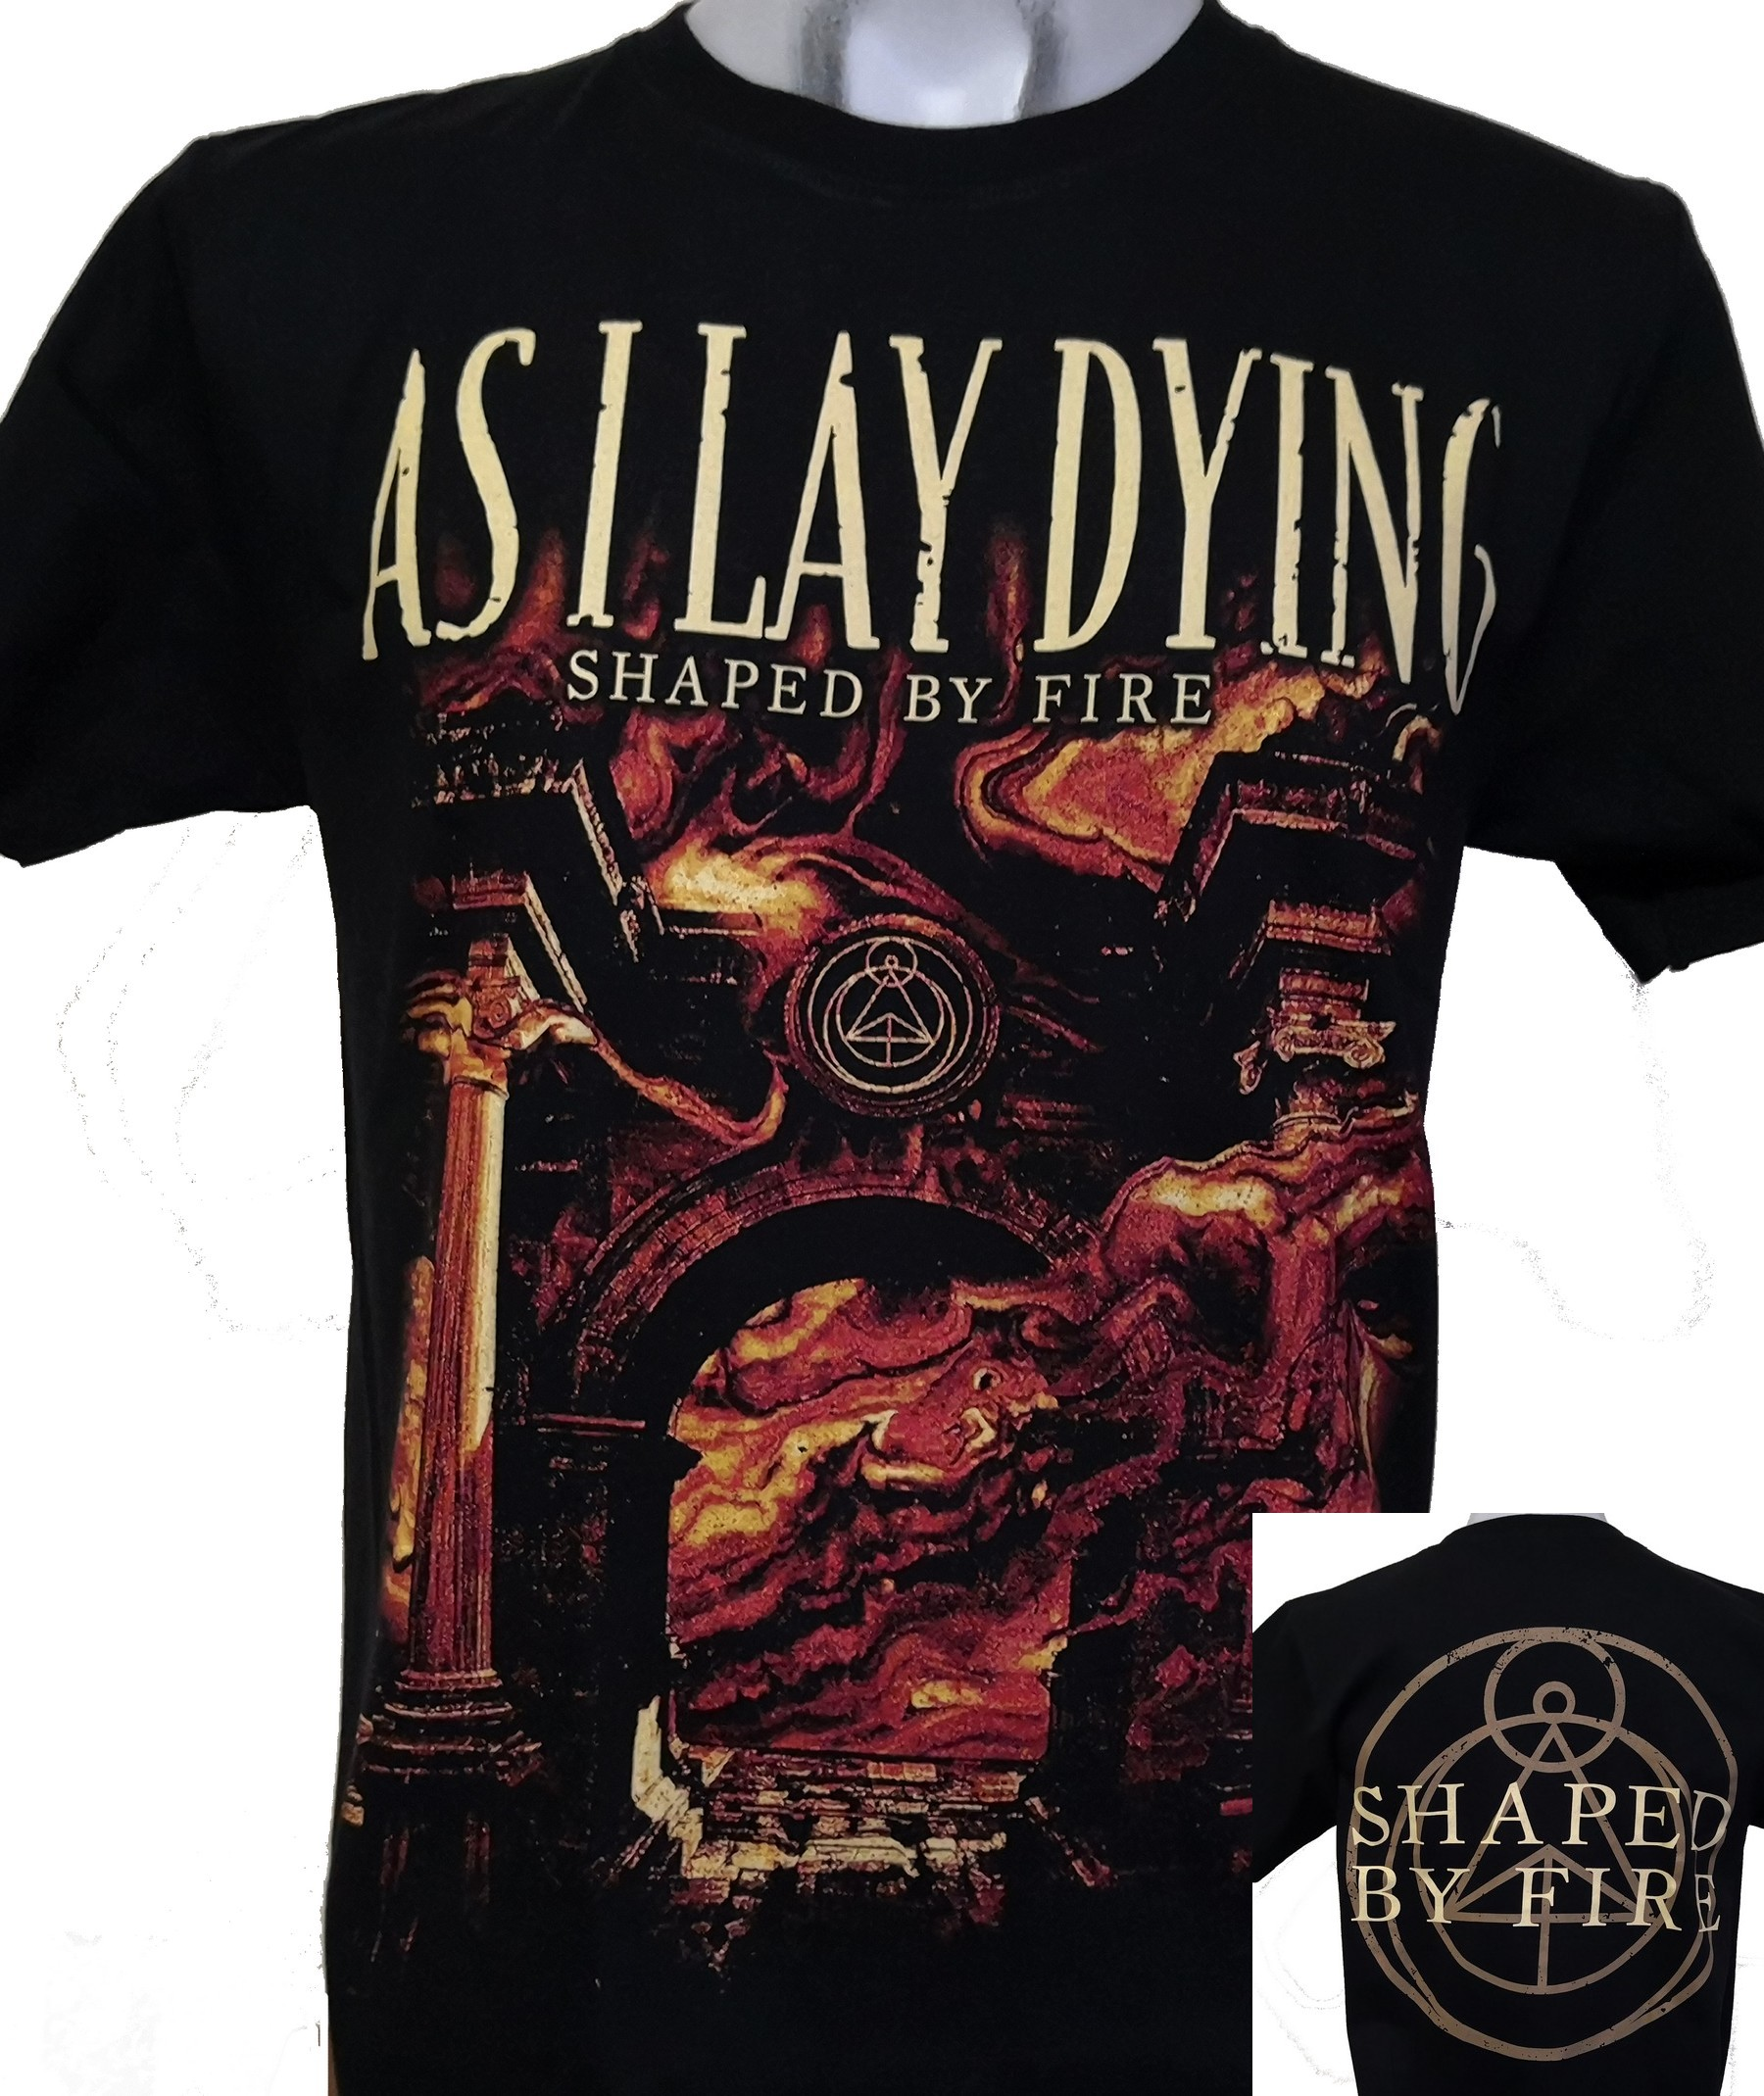 AS I LAY DYING Shaped By Fire T-Shirt